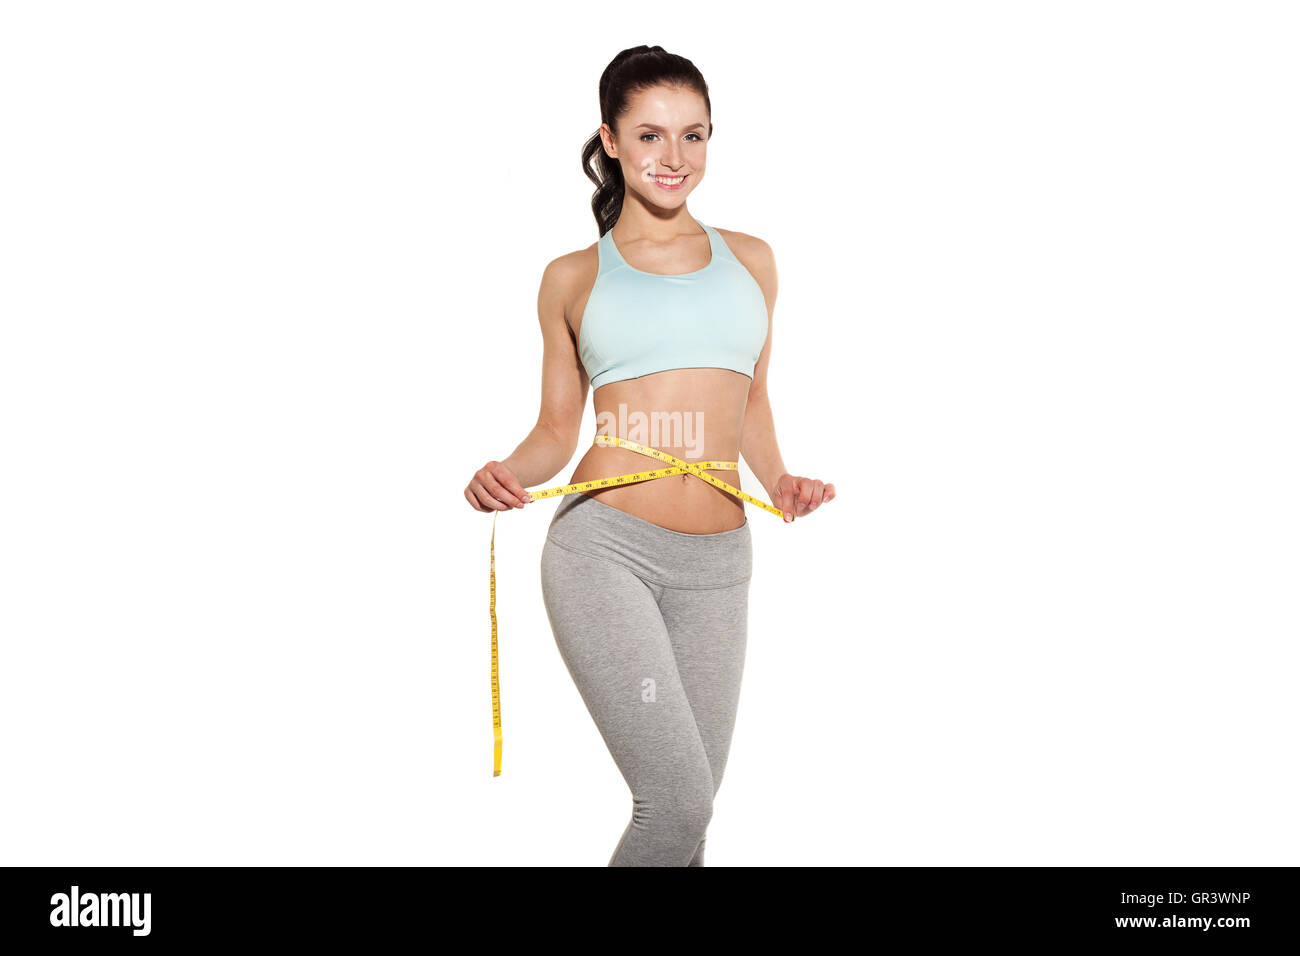 weight loss, sports girl measuring her waist, training in the gym, workout abdominals - Stock Image